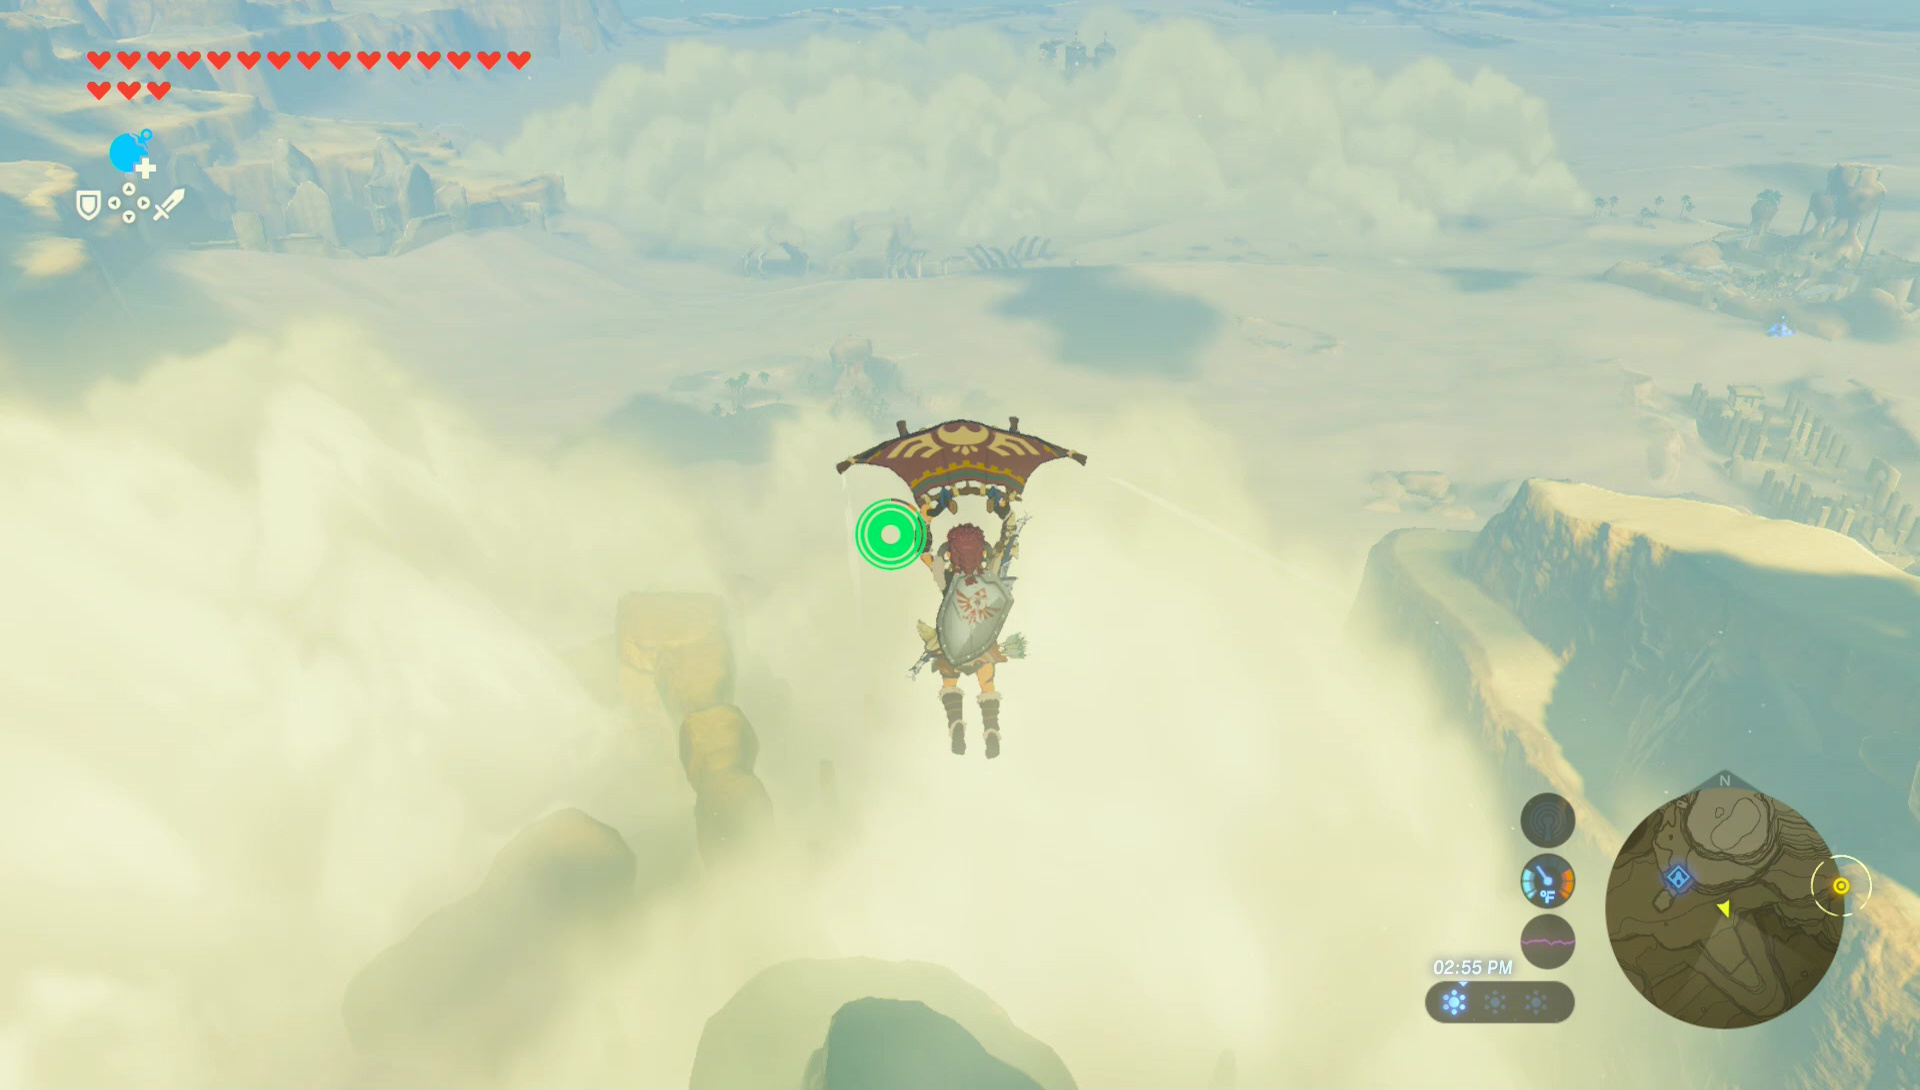 Dako Tah Shrine Guide Zelda Dungeon He is found on the west side of the outpost and will be facing in the direction of the shrine. dako tah shrine guide zelda dungeon